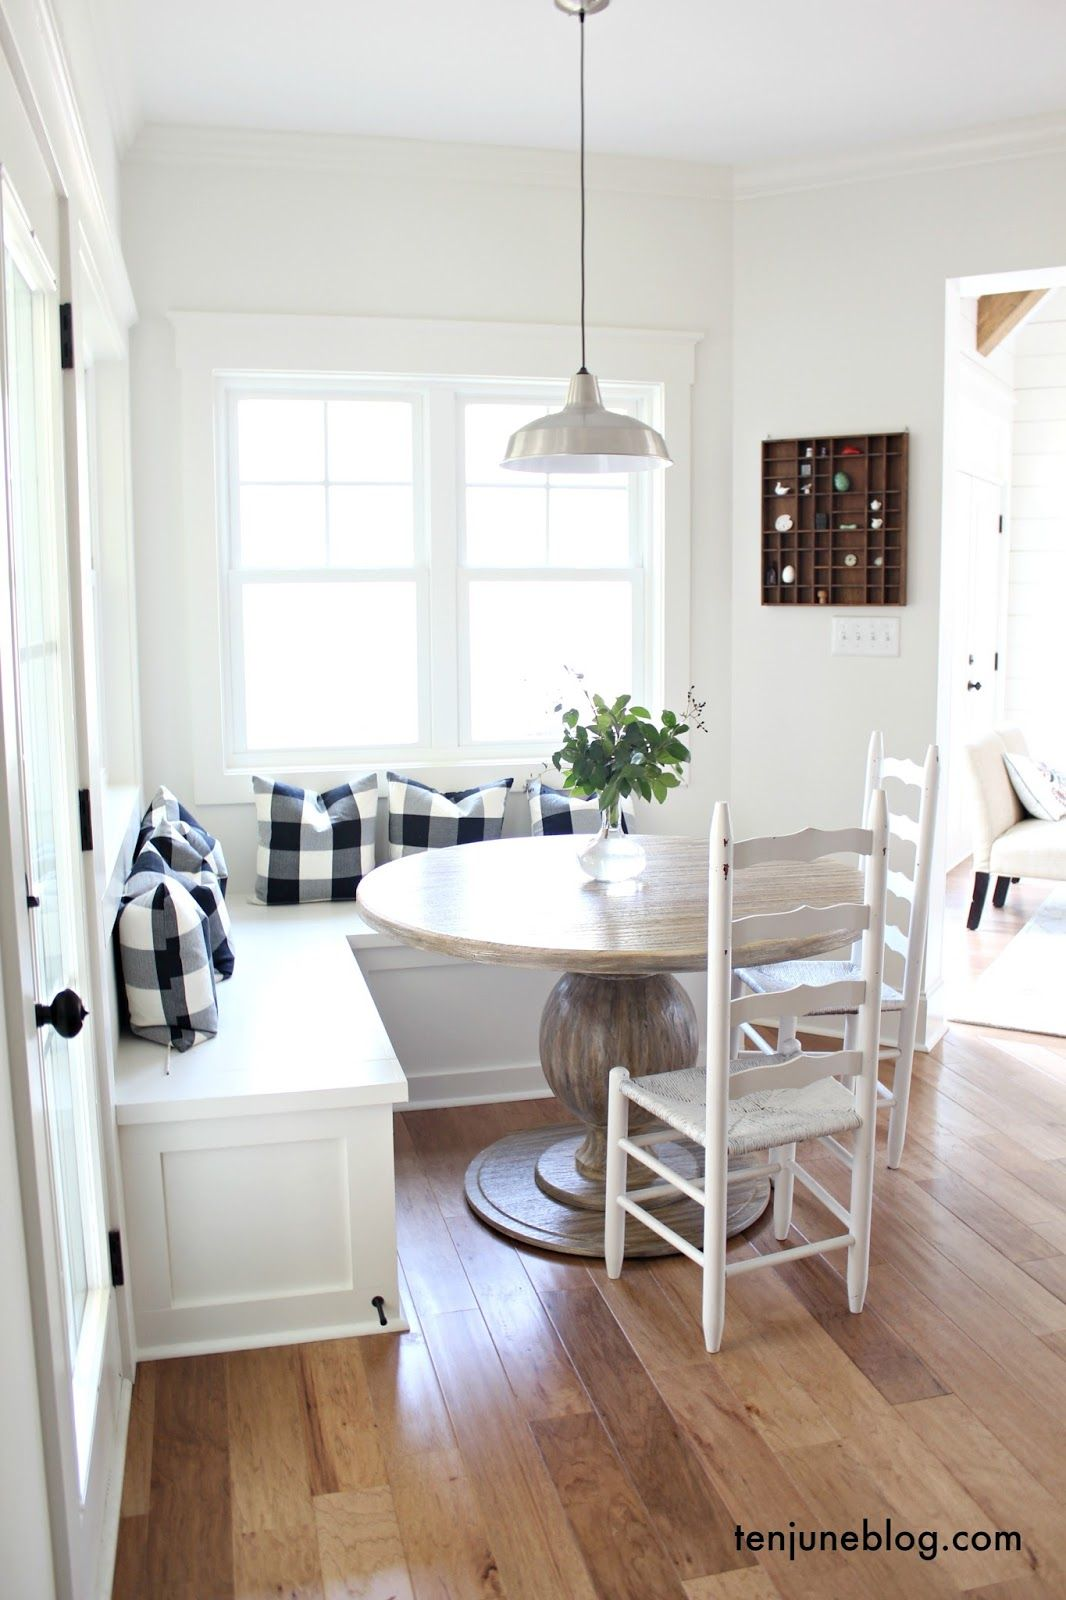 Ten June A Farmhouse Buffalo Check Built In Breakfast Nook White Painted Built In Benches Windows Li Dining Nook Breakfast Nook Table Breakfast Nook Bench